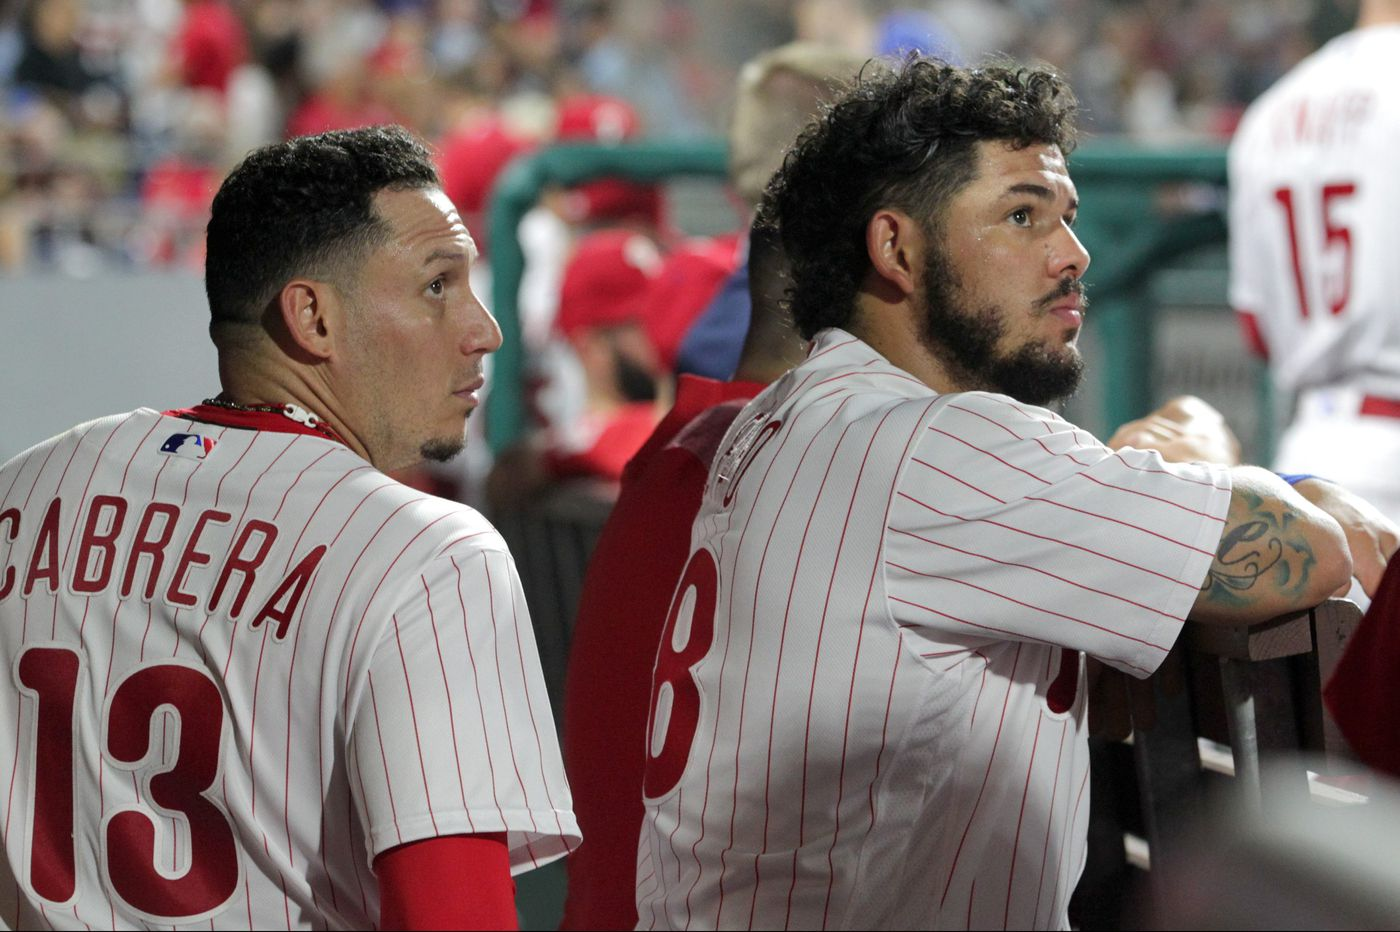 Phillies could struggle to finish above .500 | Extra Innings